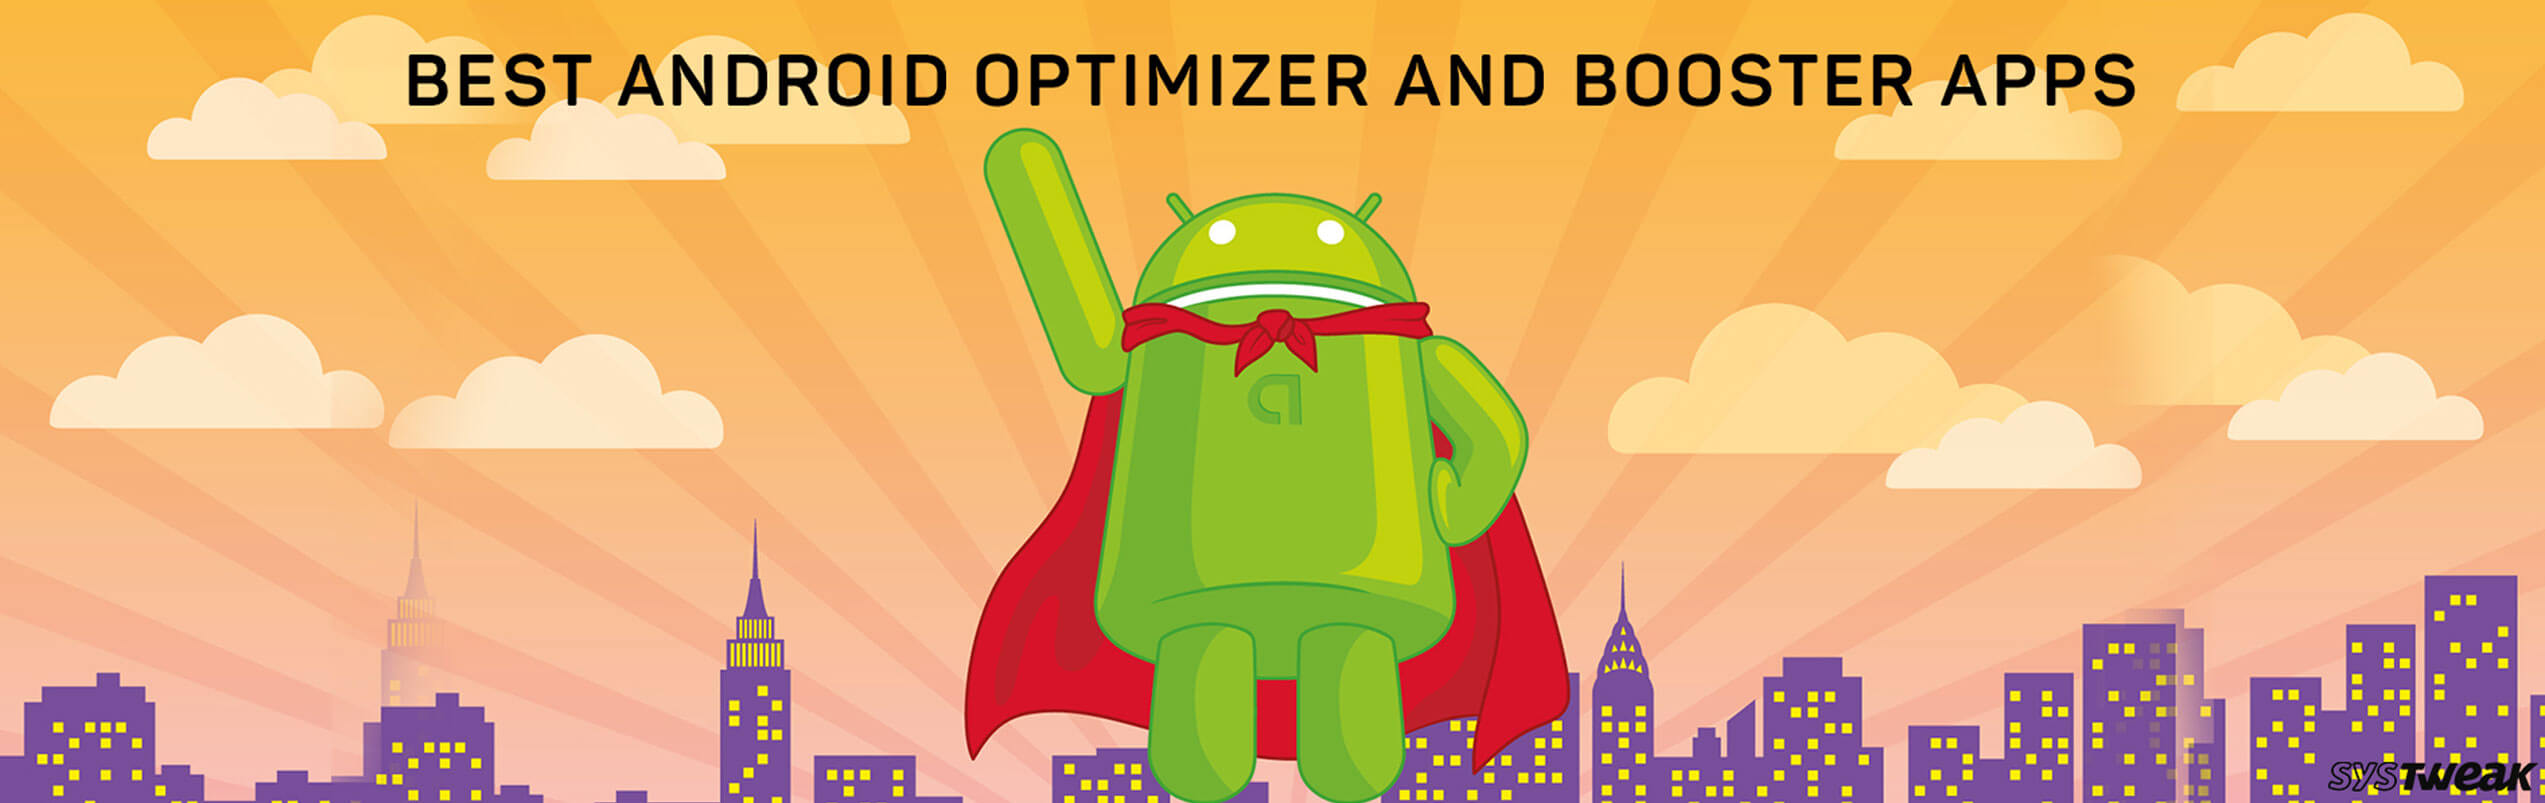 21 Best Android Optimizer and Booster Apps 2018